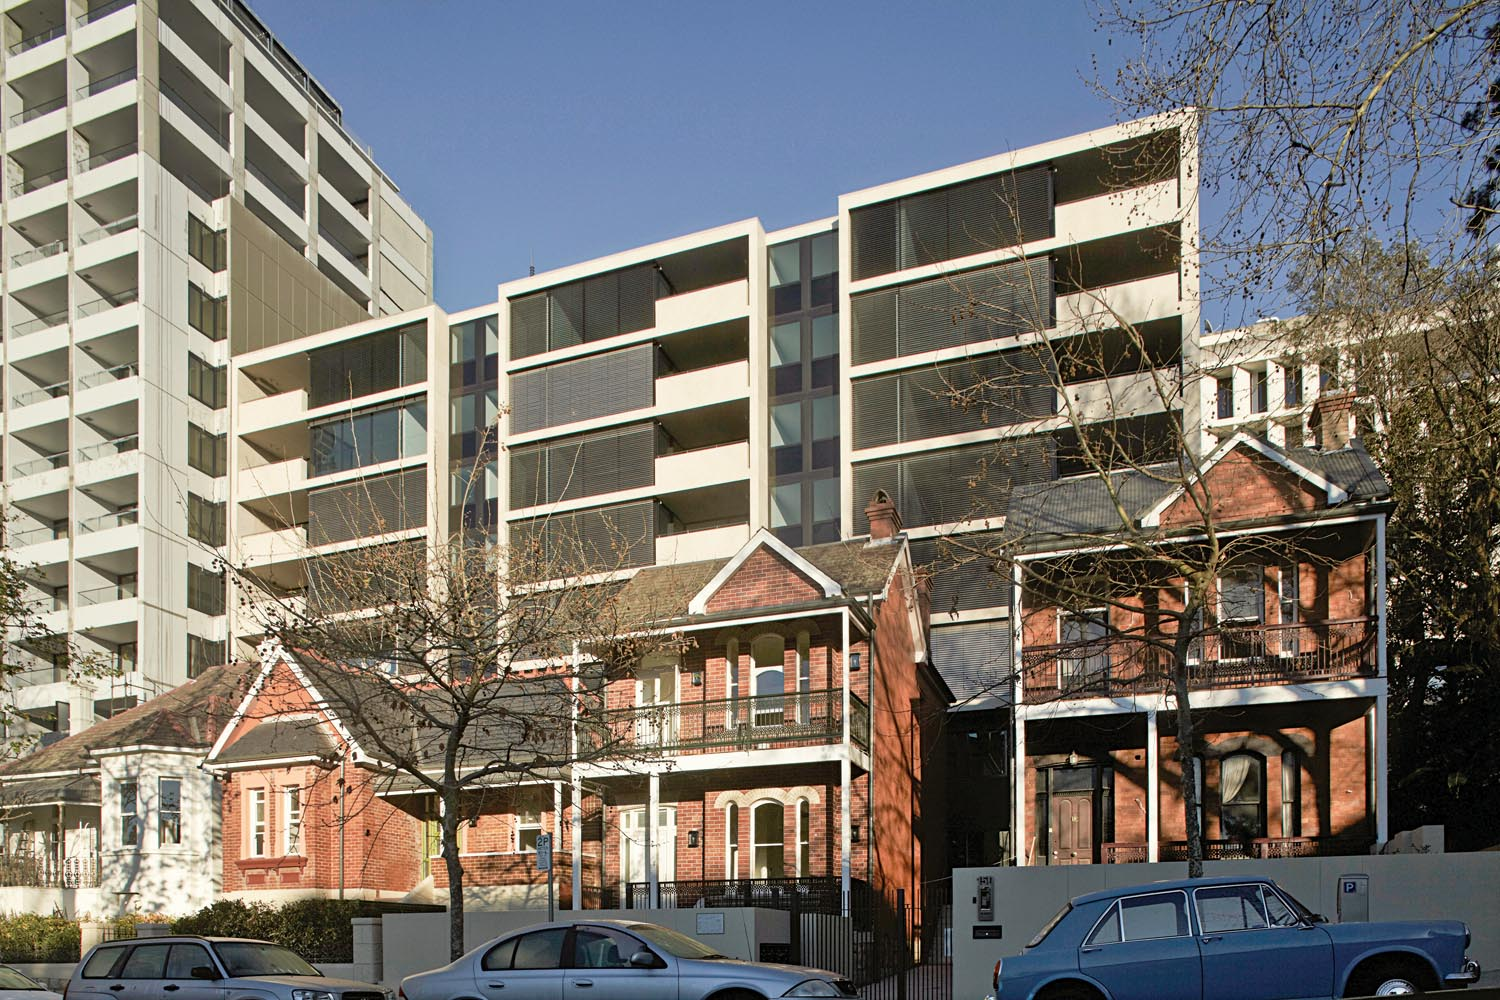 The apartment complex is located behind heritage-listed houses